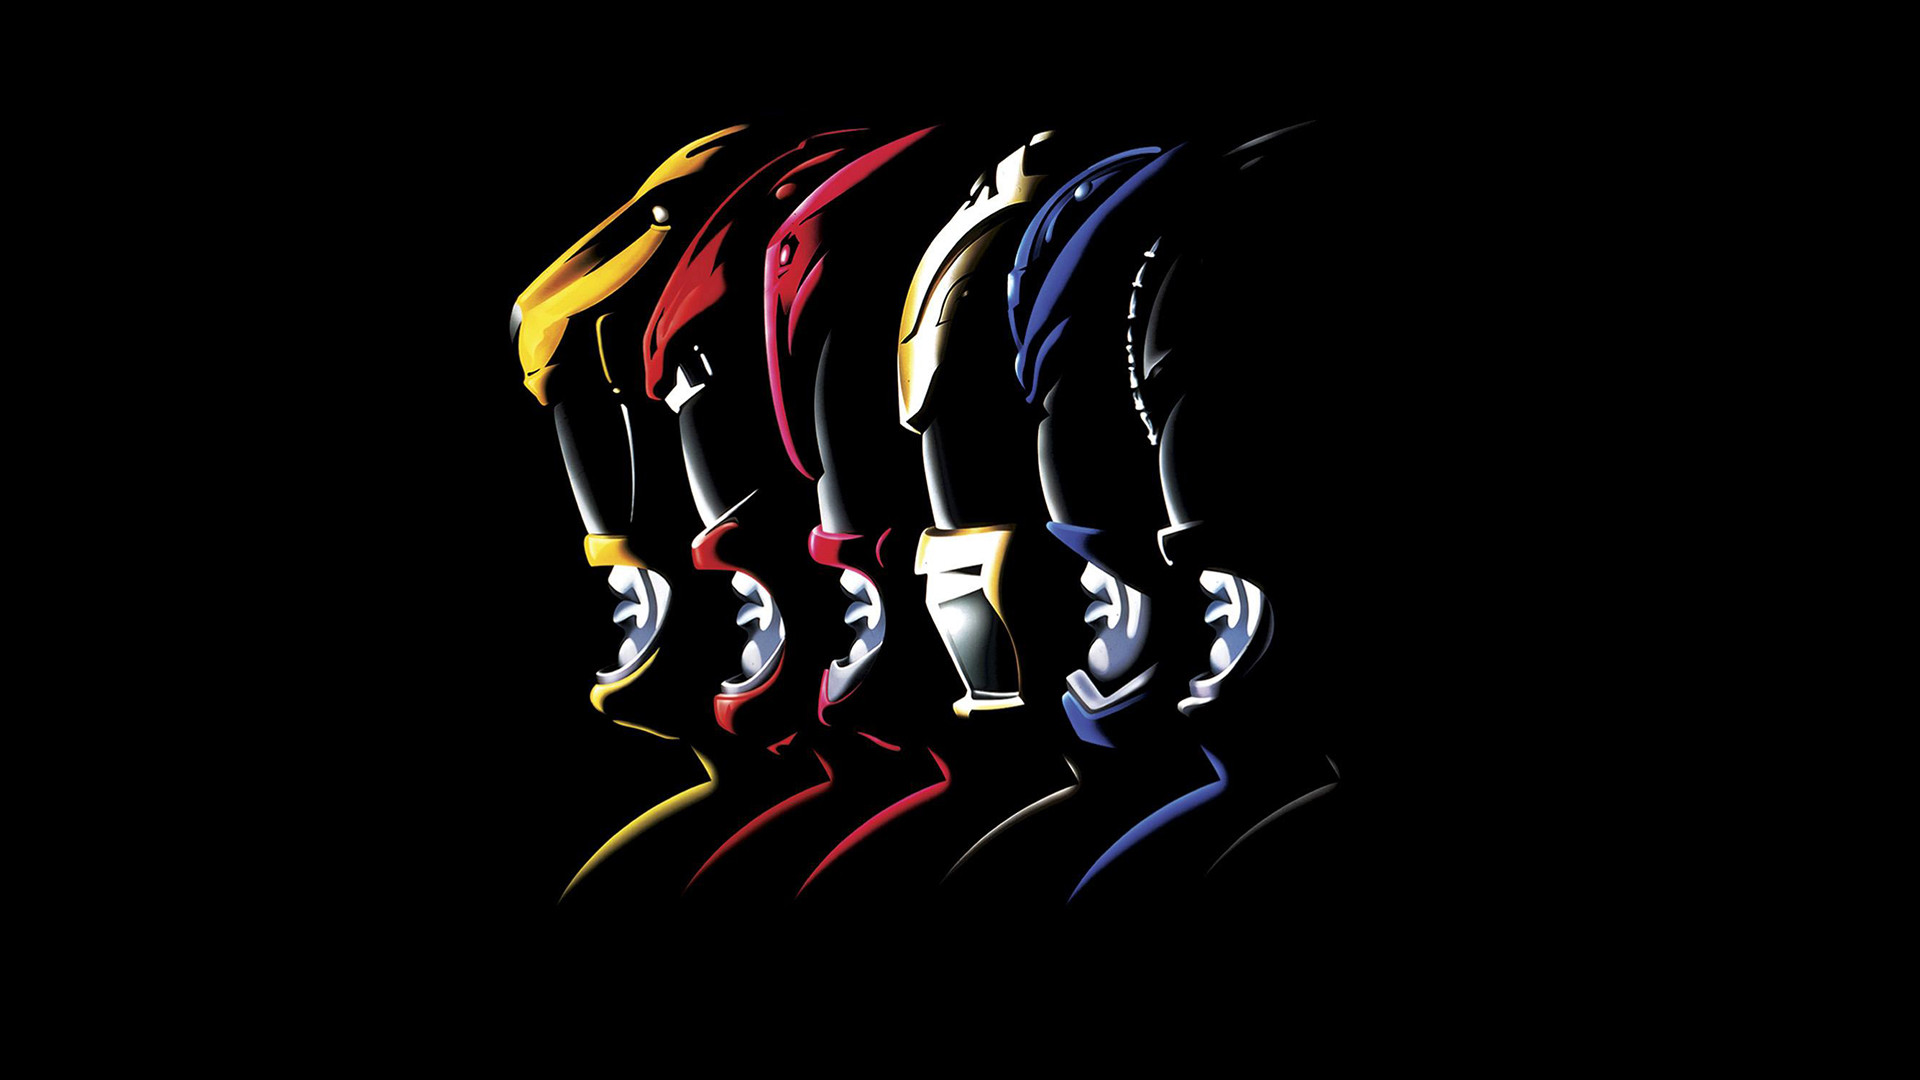 1 Mighty Morphin Power Rangers: The Movie HD Wallpapers   Backgrounds –  Wallpaper Abyss